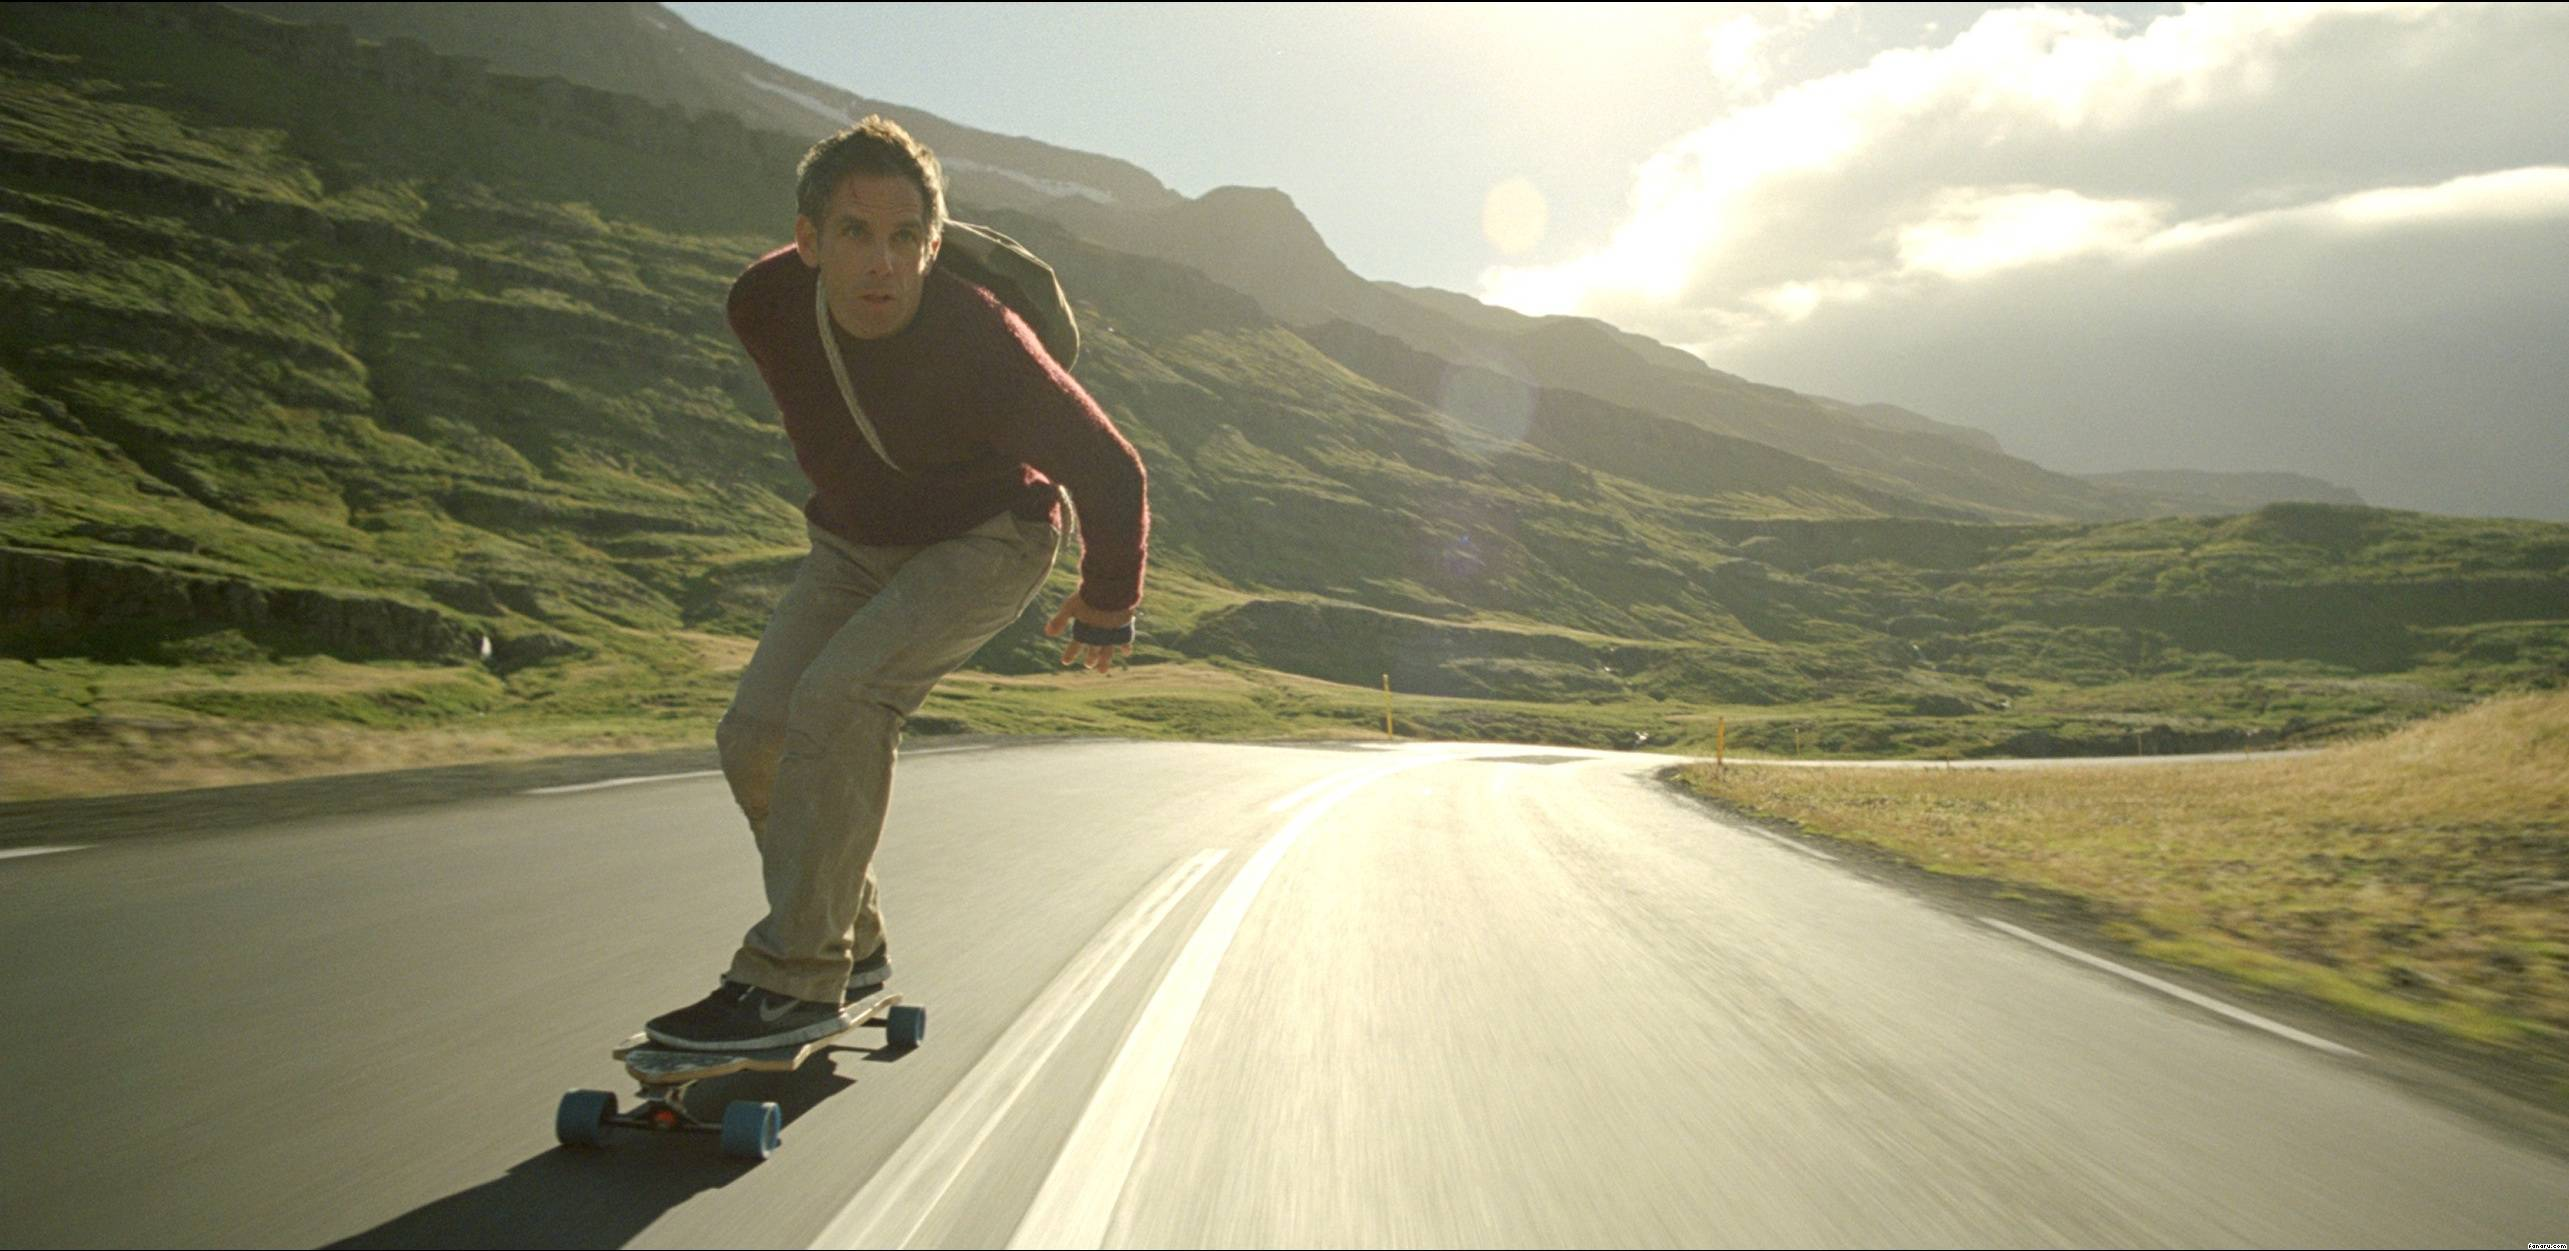 the-secret-life-of-walter-mitty-the-secret-life-of-walter-mitty2